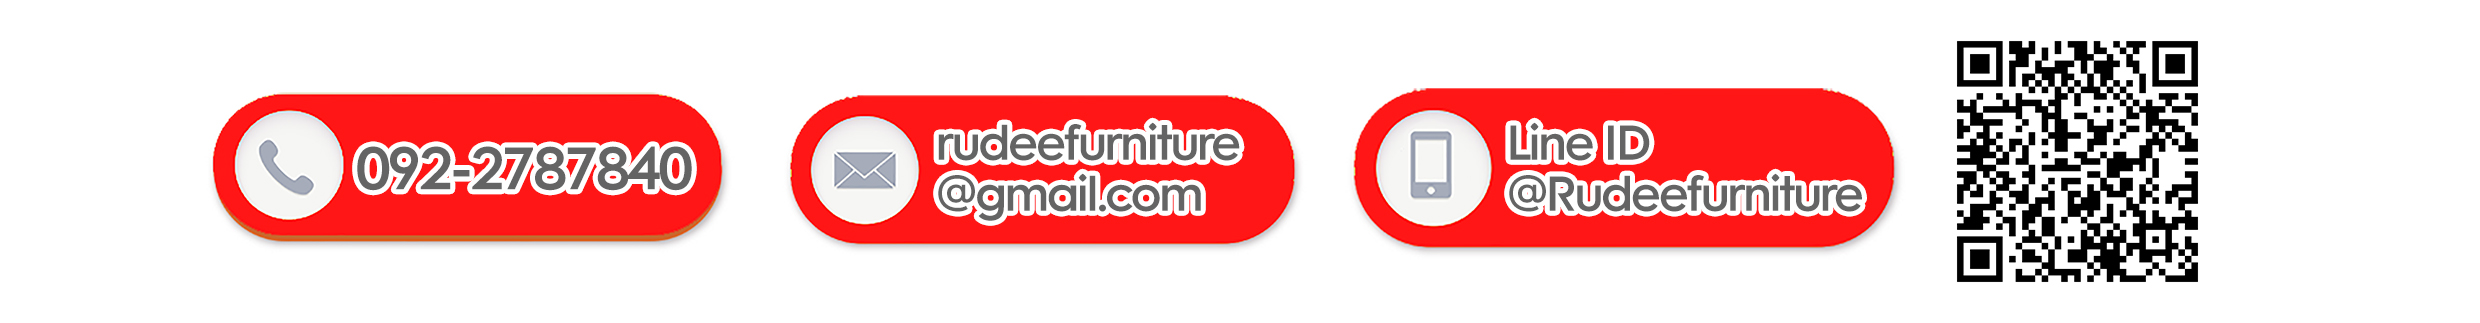 contact us-Rudee furniture